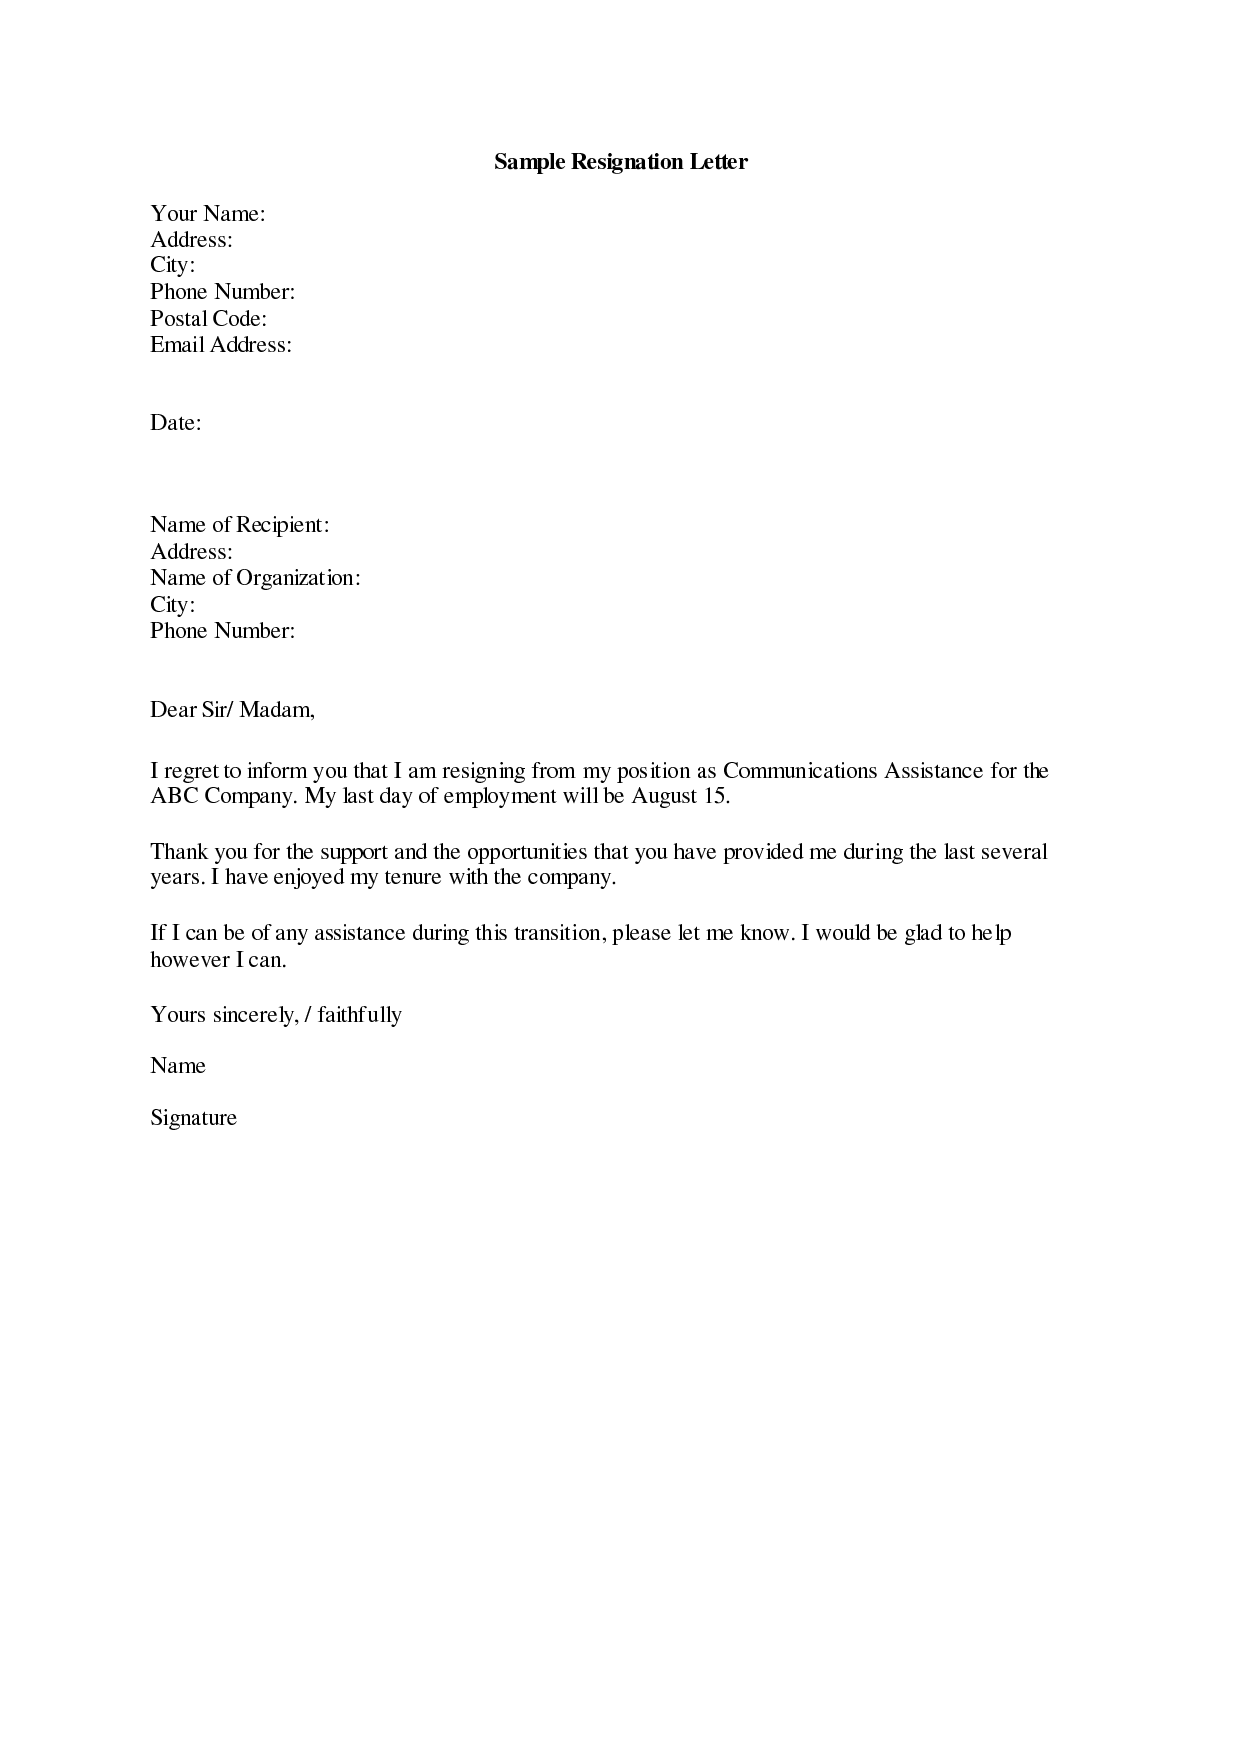 of different resignation letter templates for different resignation ...